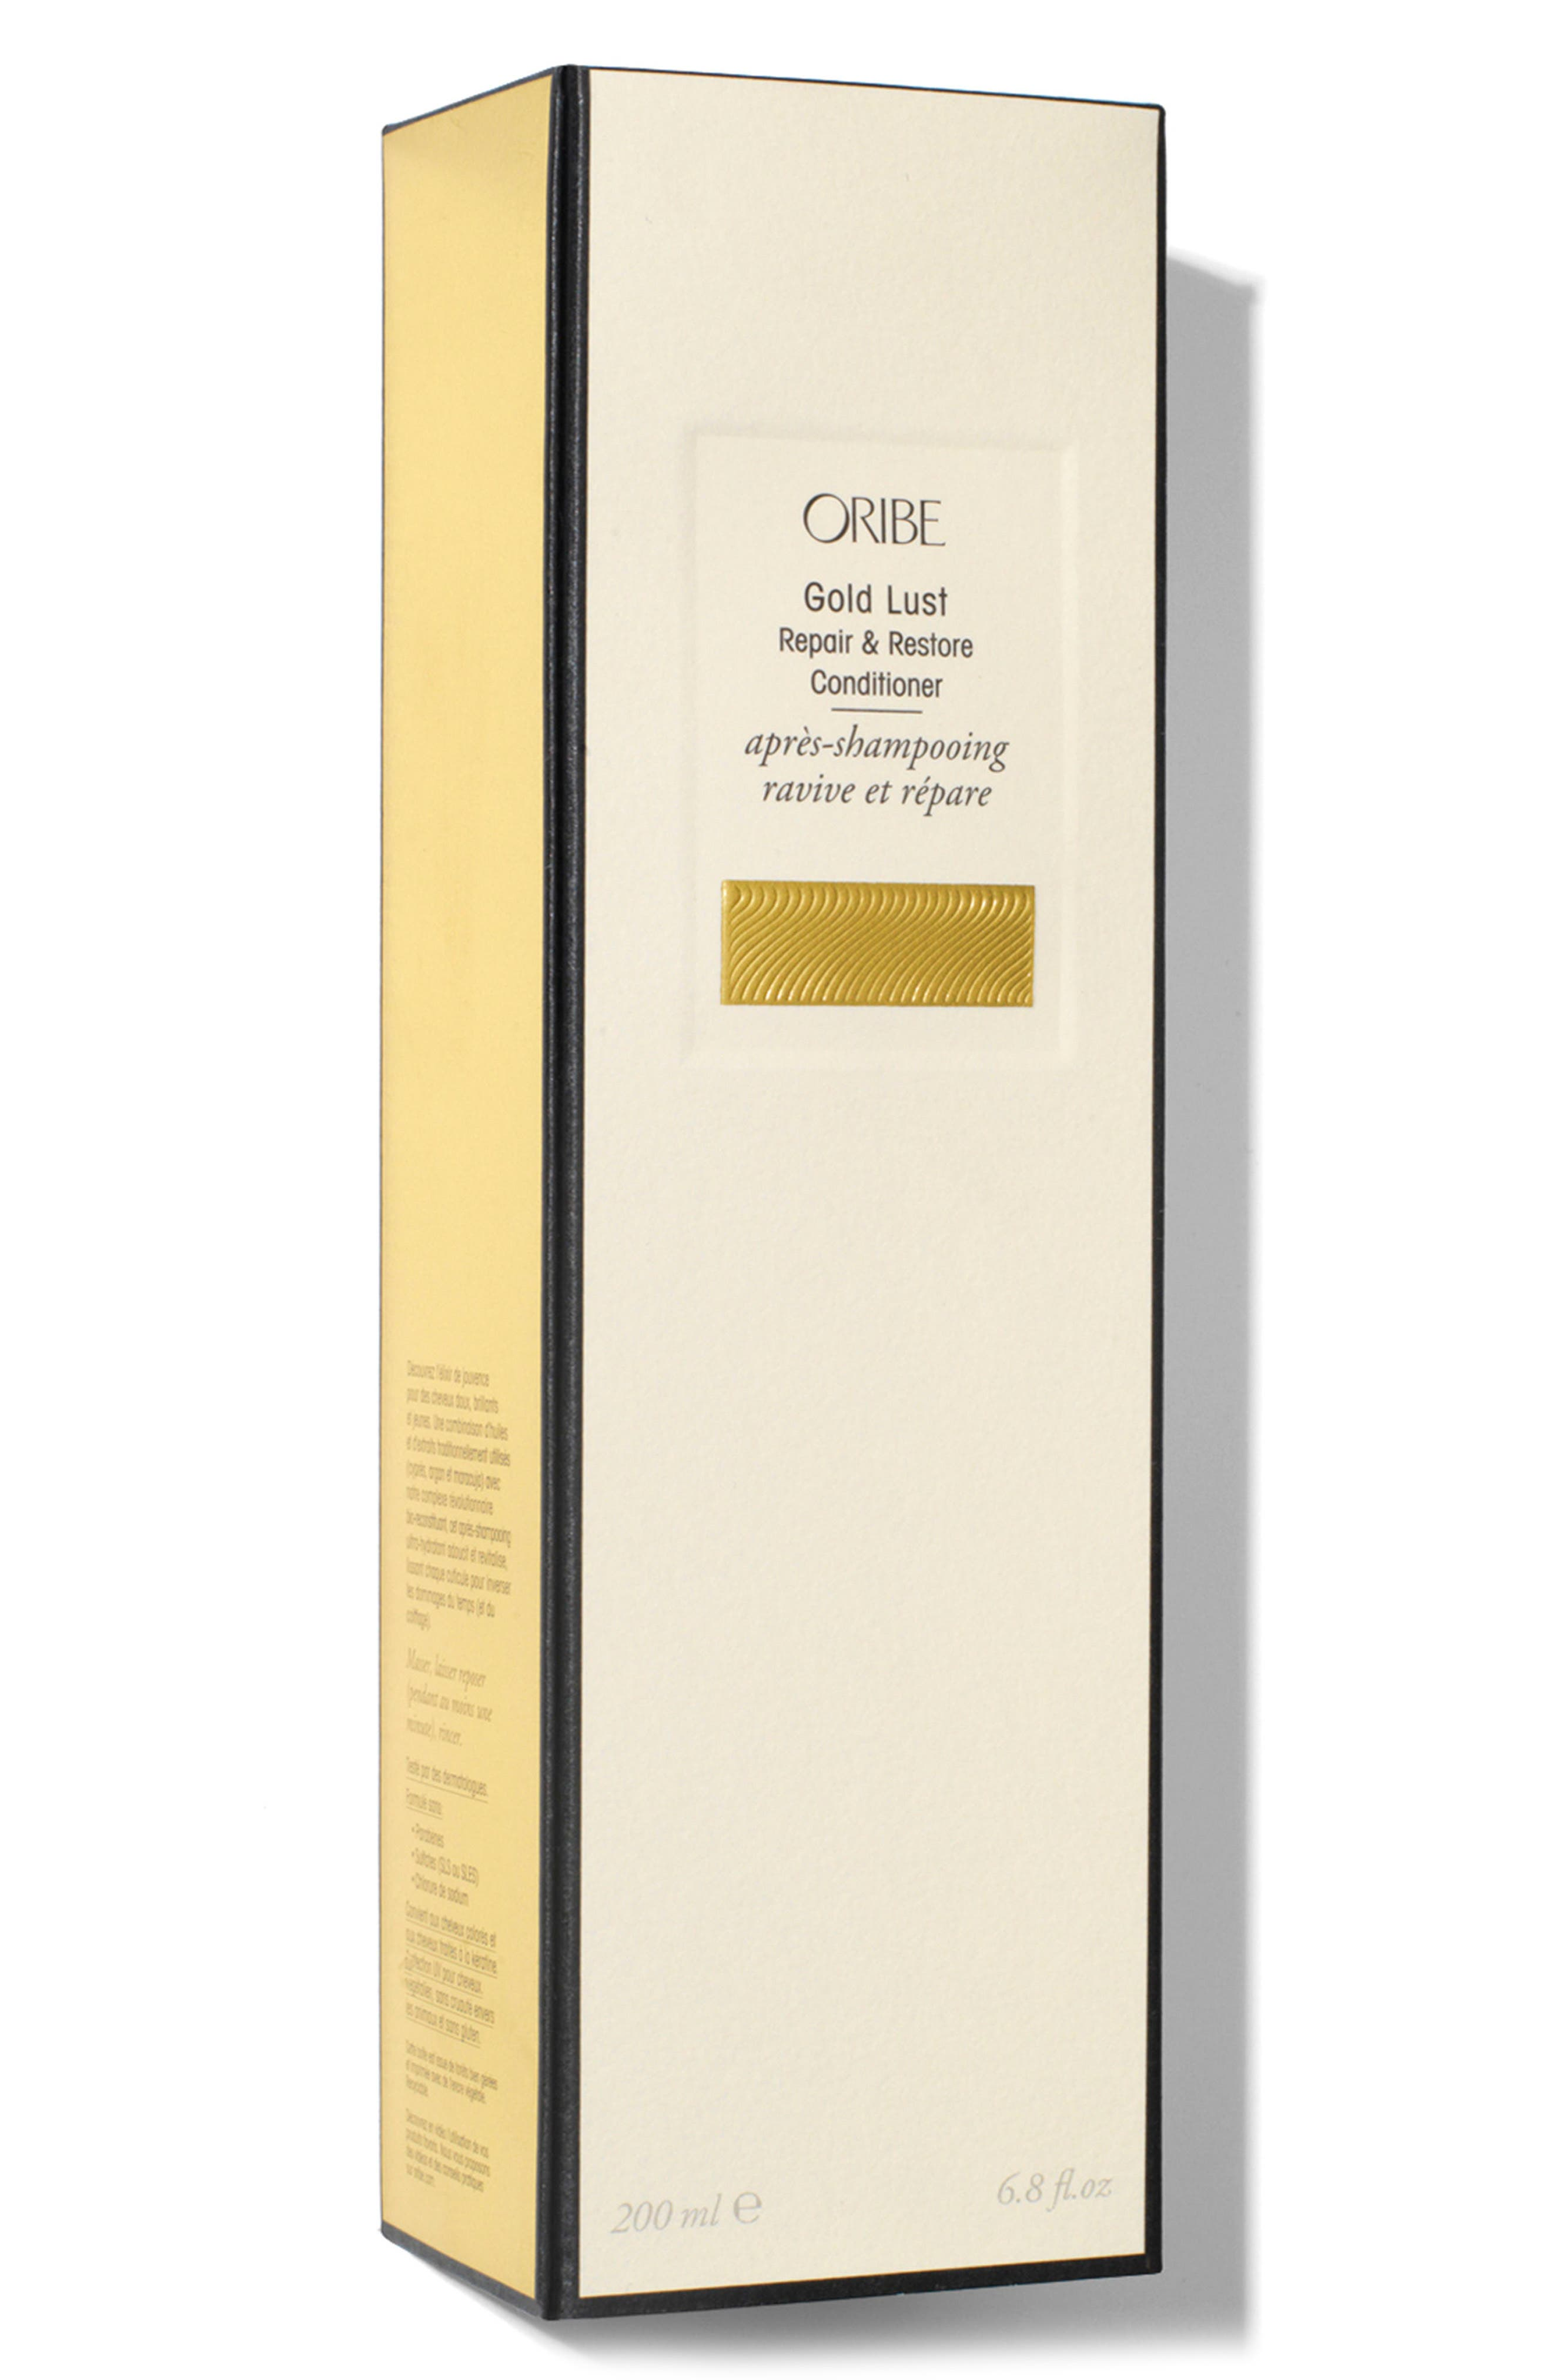 ORIBE, SPACE.NK.apothecary Oribe Gold Lust Repair & Restore Conditioner, Alternate thumbnail 2, color, NO COLOR